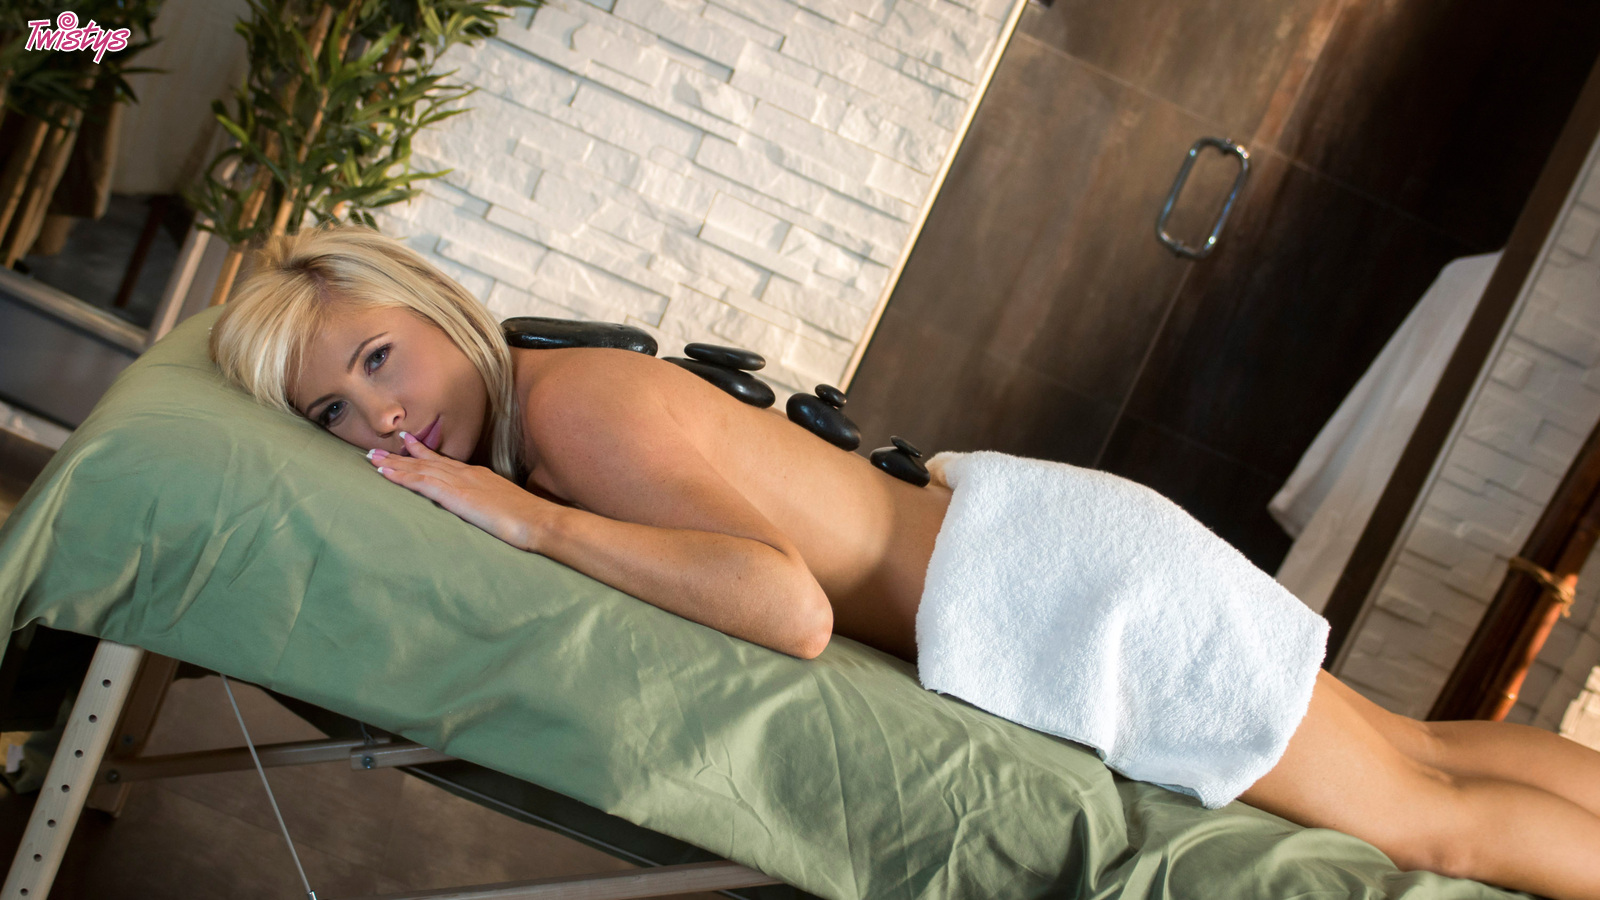 A Hot Massage.. featuring Tasha Reign | Twistys.com